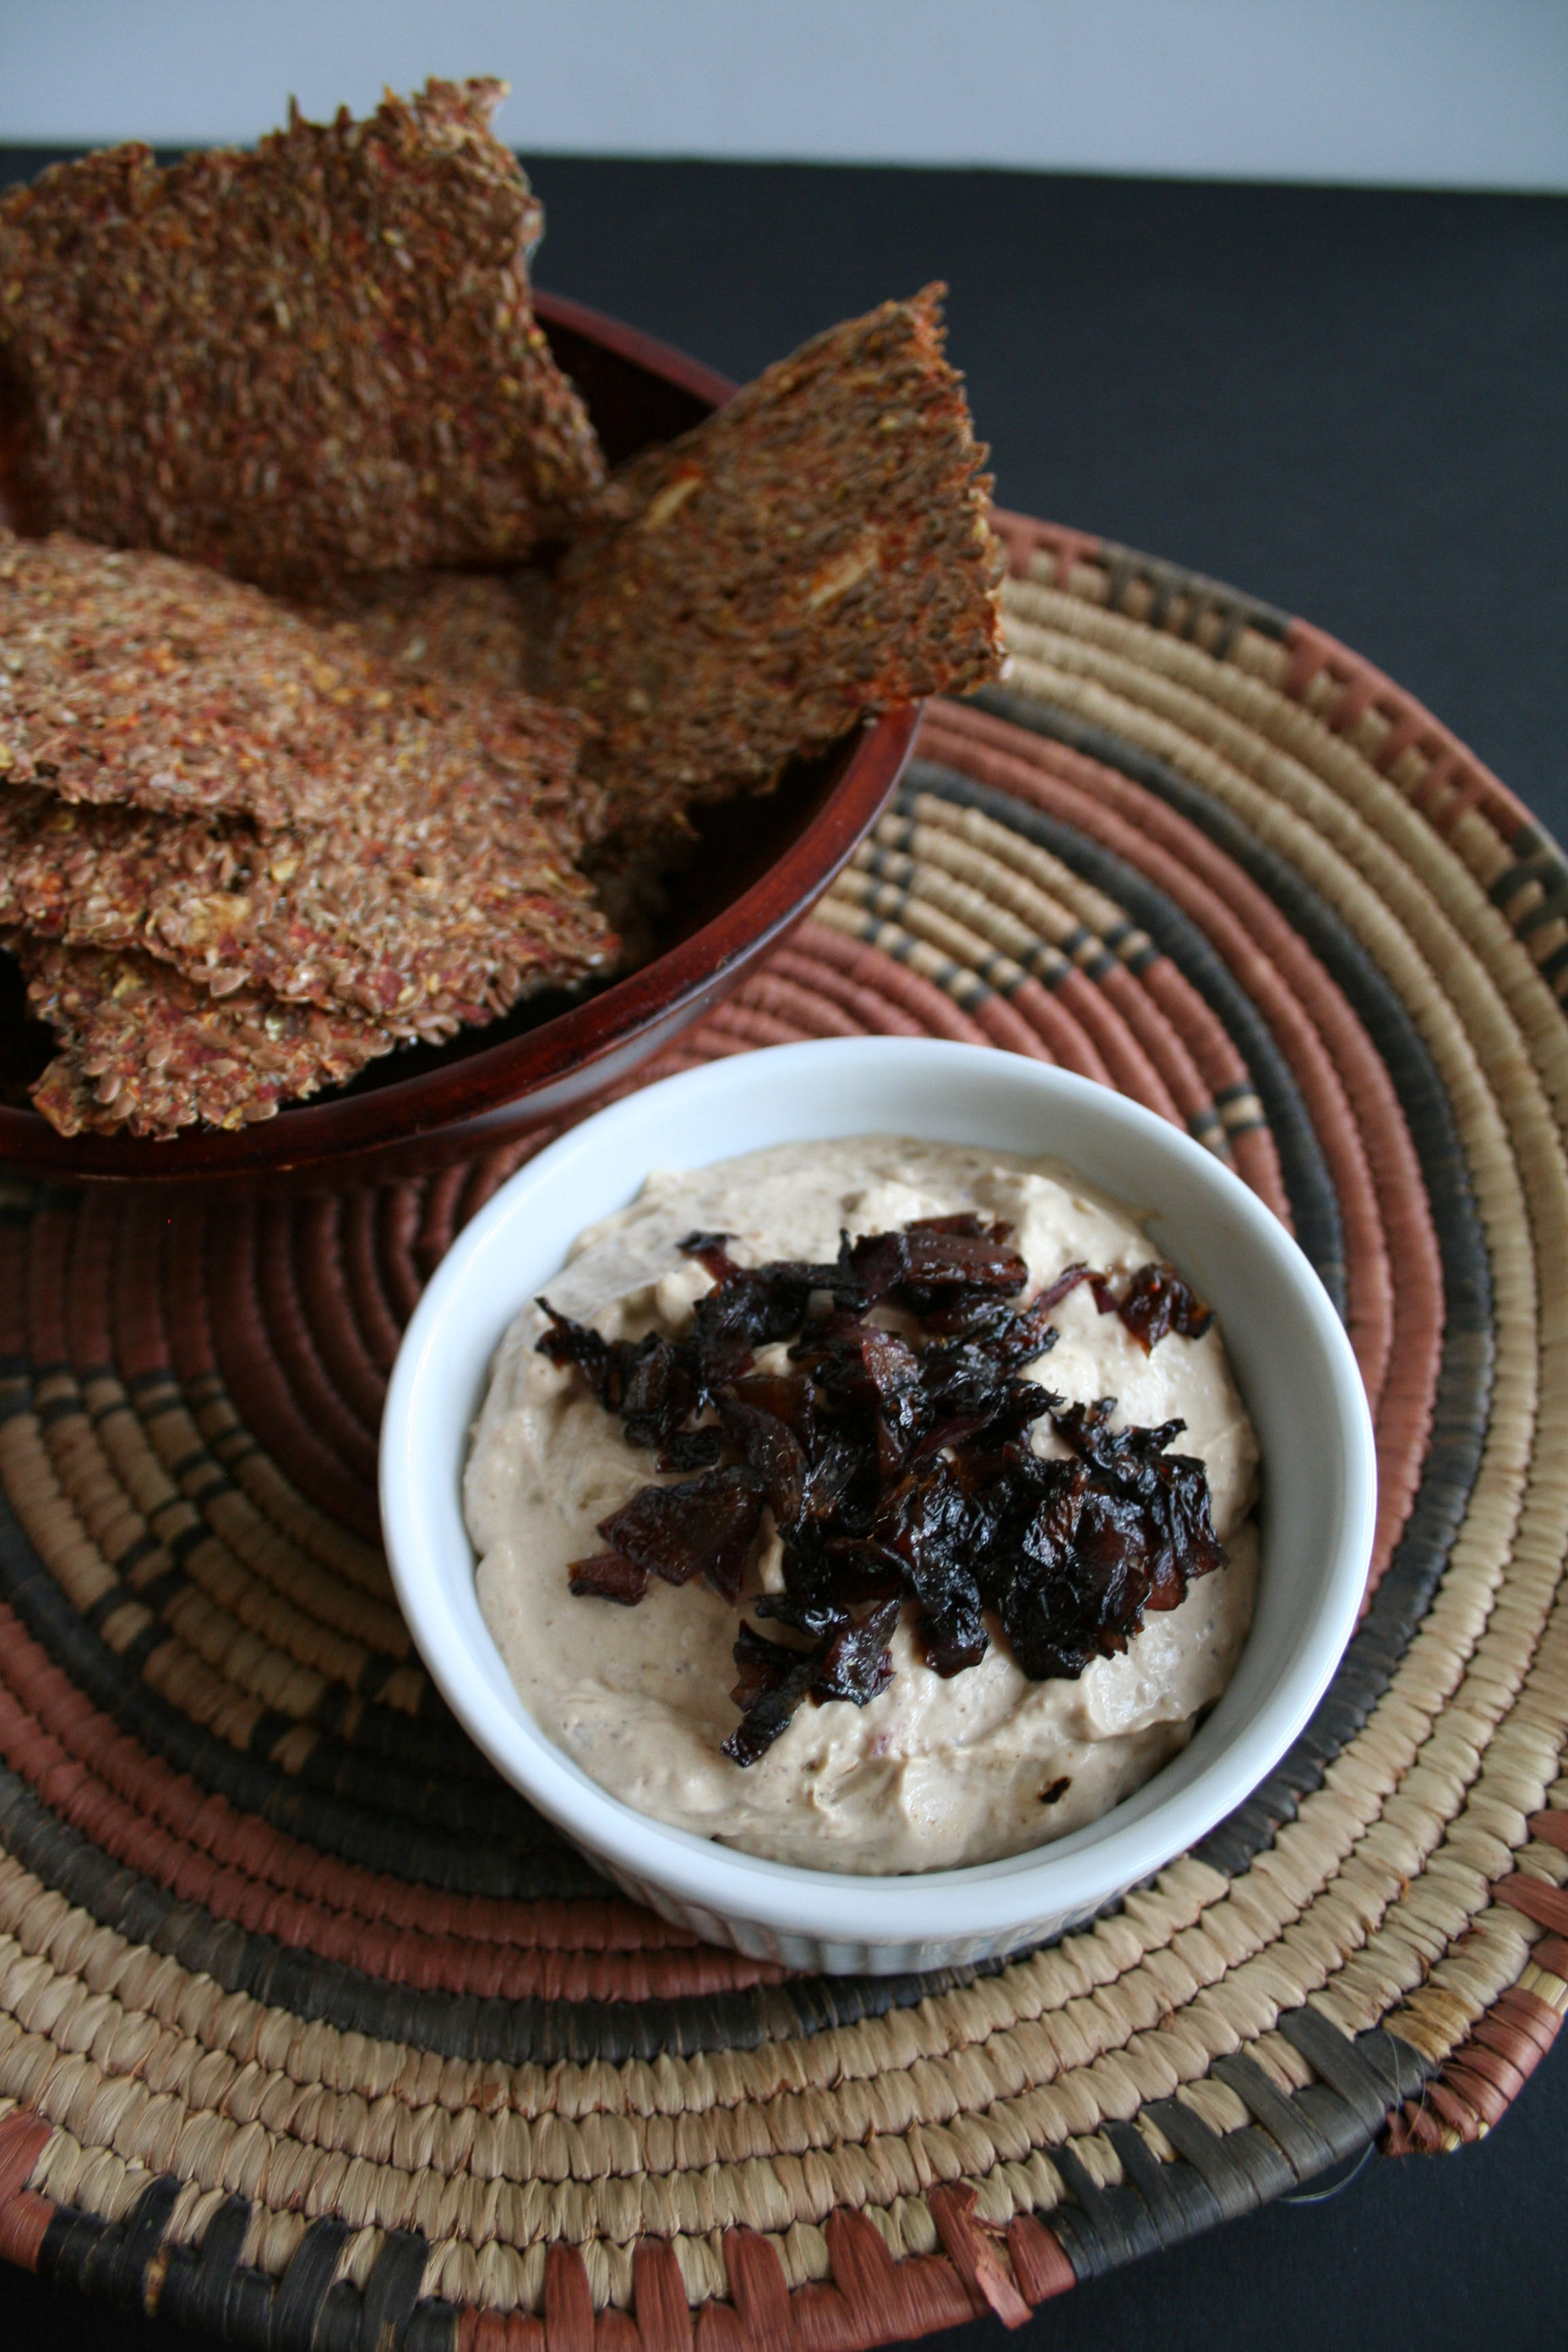 Caramelized Red Onion Dip with flax crackers in the background.